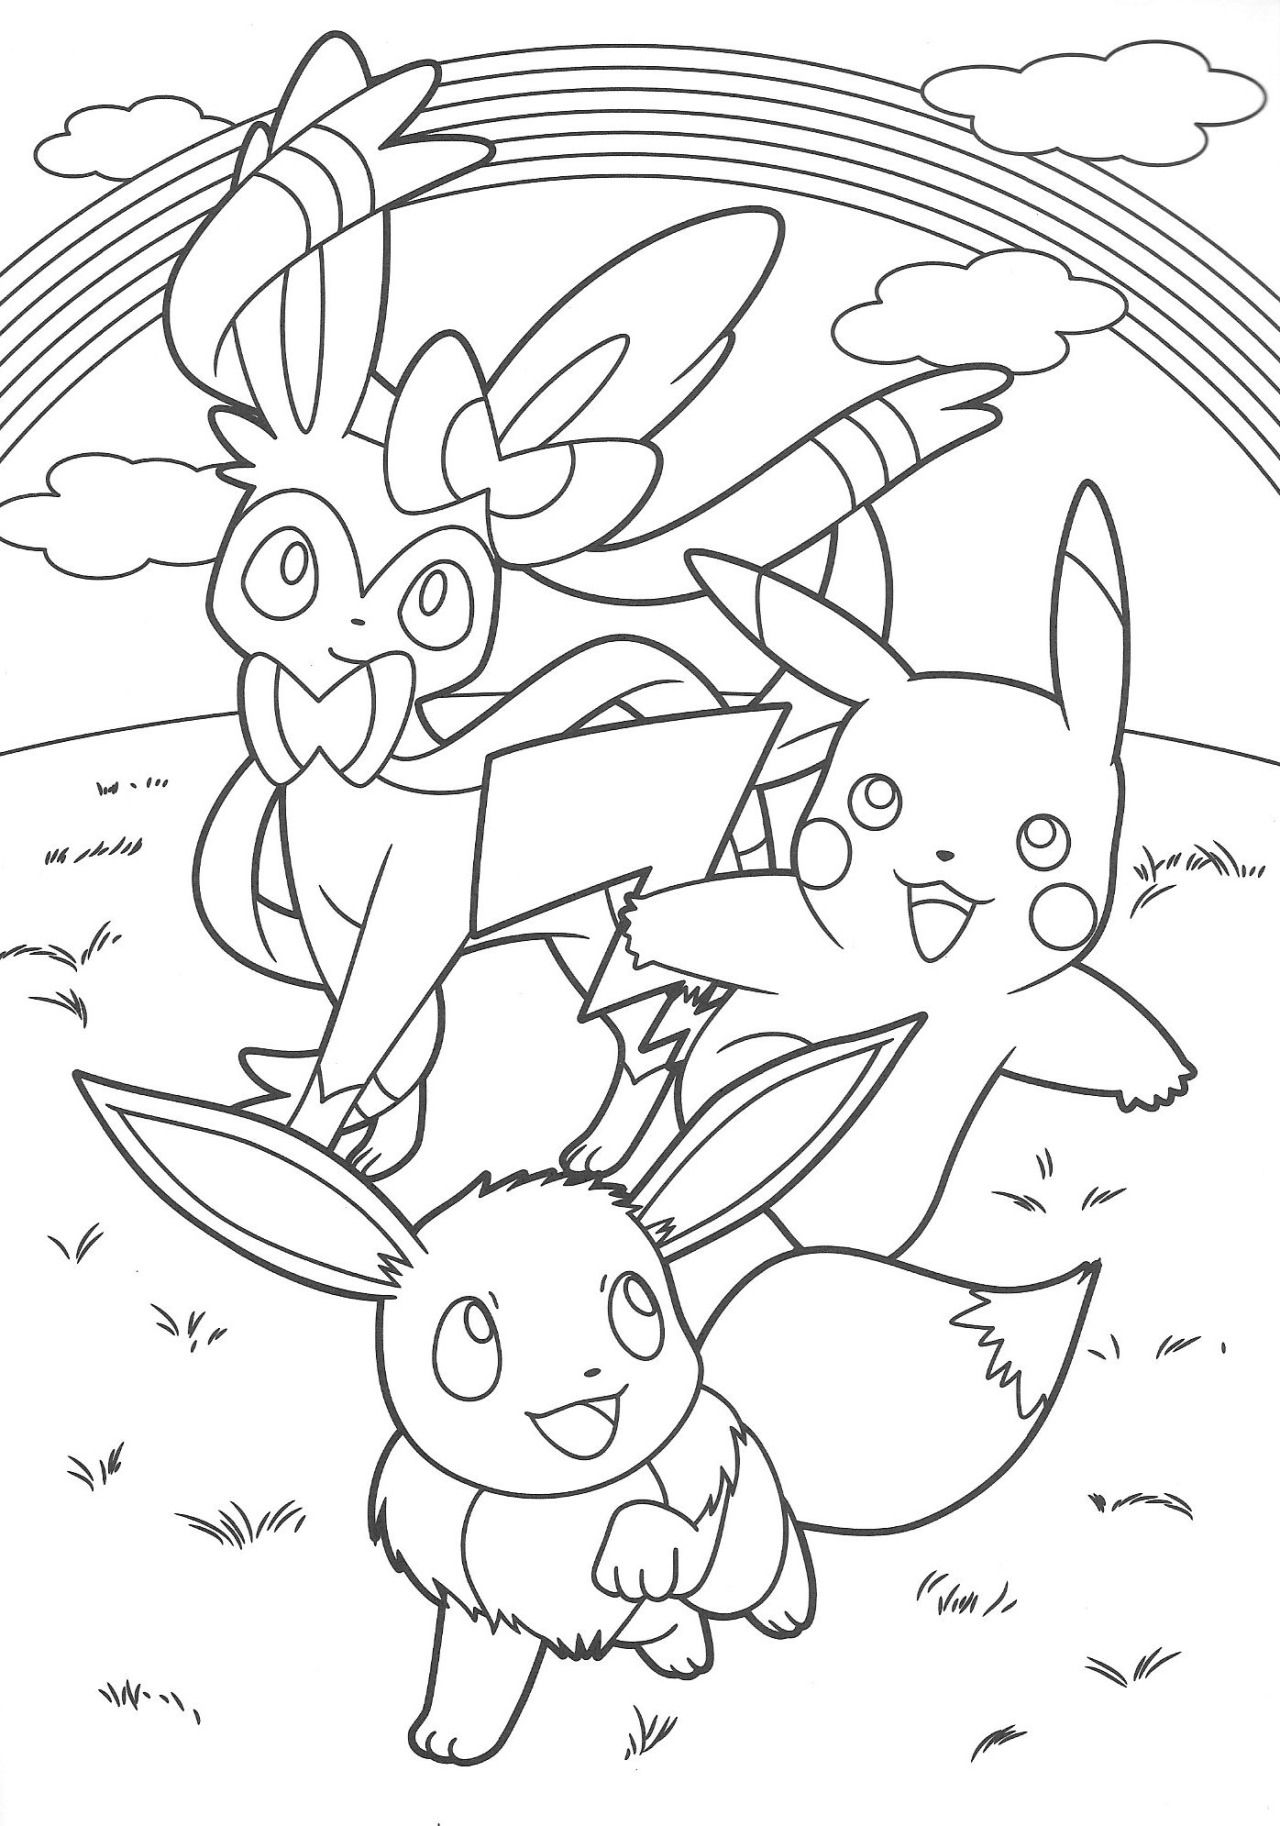 Pokémon Scans from PacificPikachu's Collection Coloring